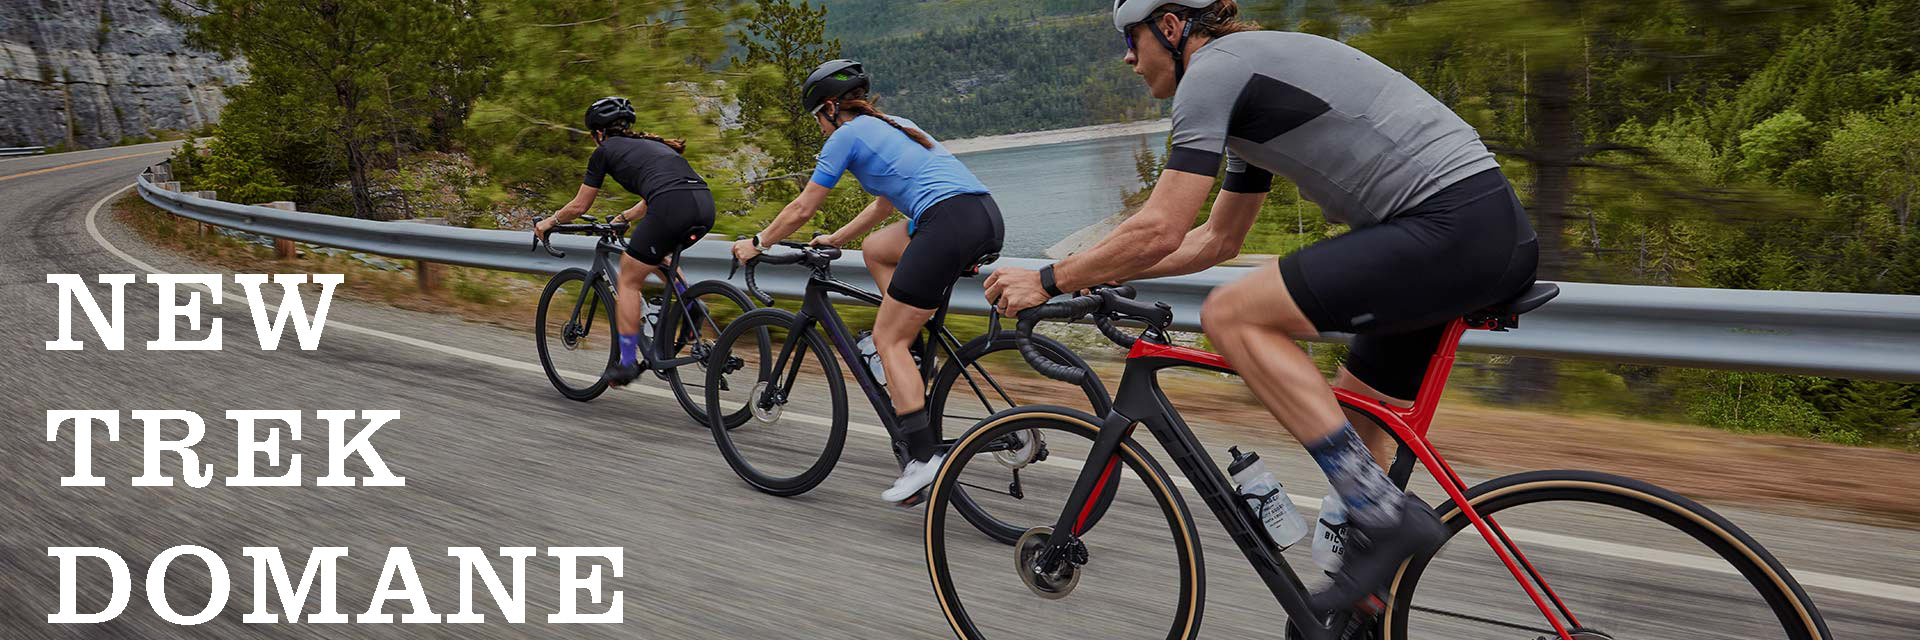 See The New Trek Domane